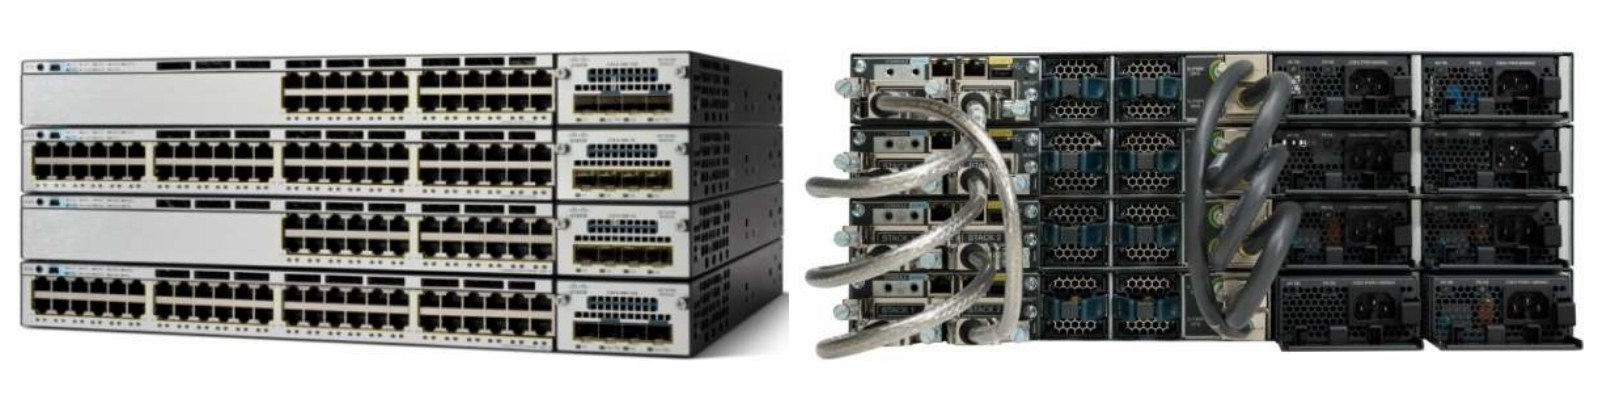 Коммутатор Cisco Catalyst WS-C3750X-48PF-L (134-202) - 2